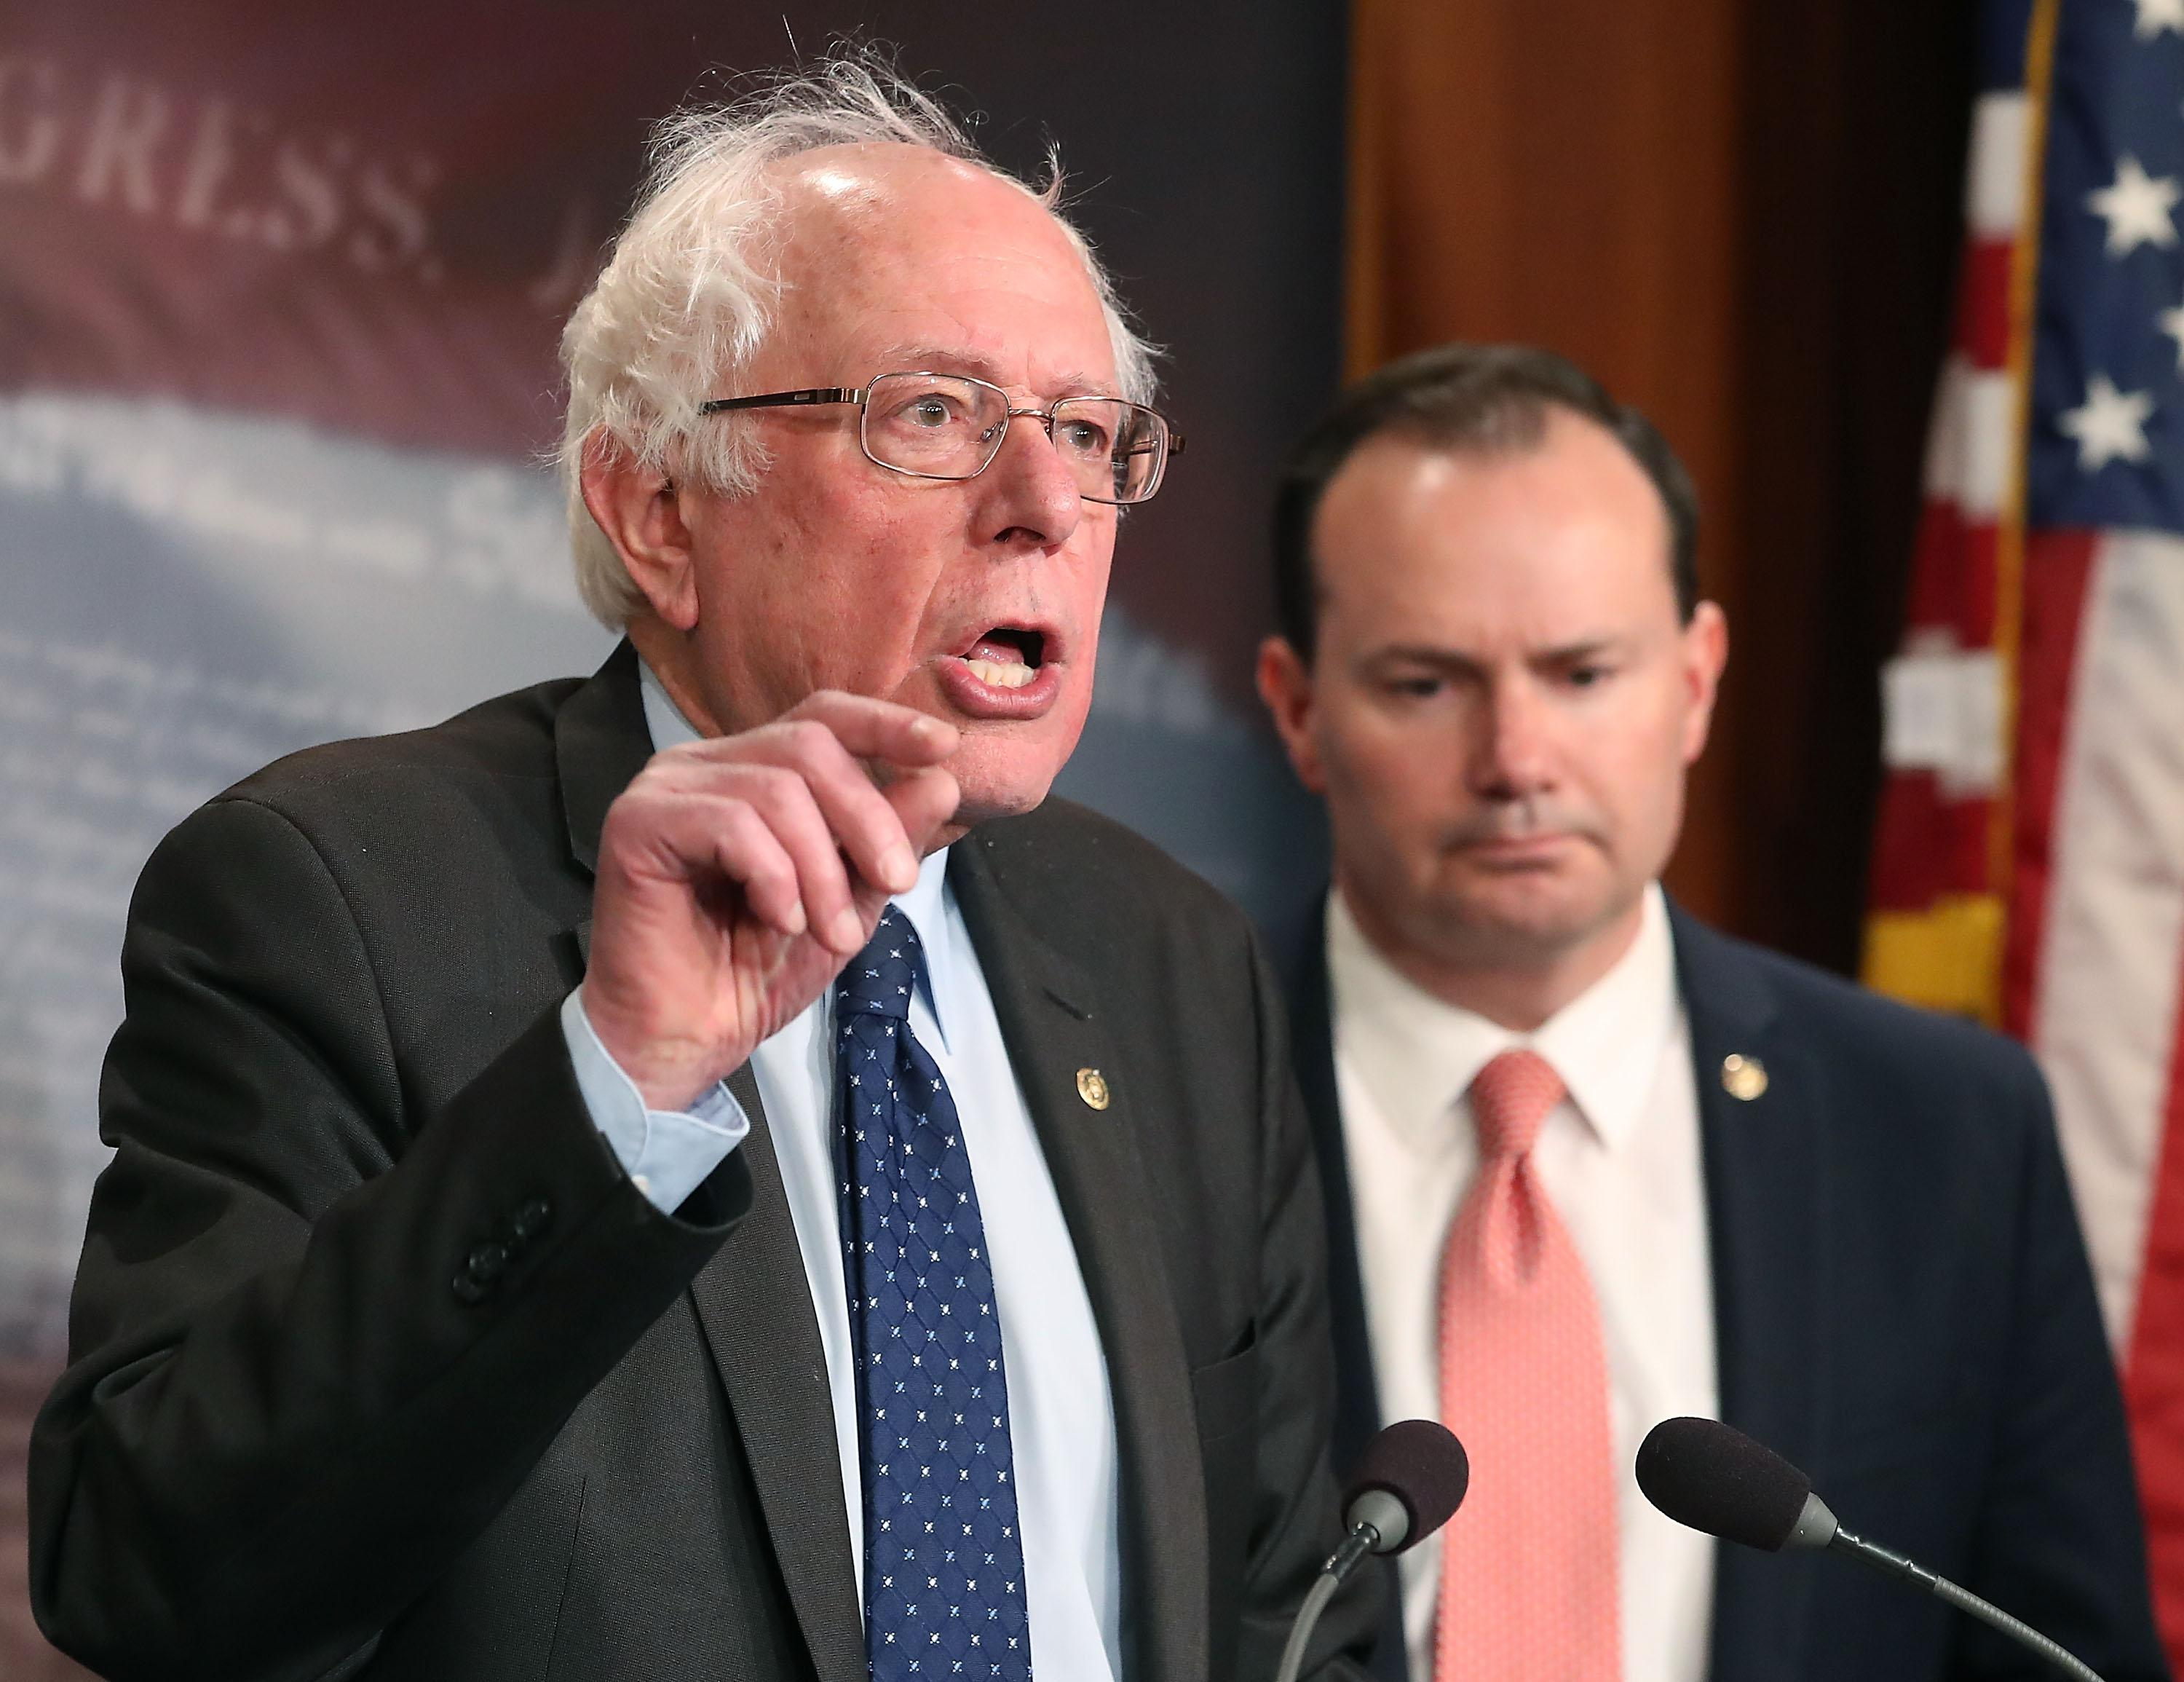 WASHINGTON, DC - MARCH 01: Sen. Bernie Sanders (I-VT), (L), and Sen. Mike Lee (R-UT), introduce a joint resolution to remove U.S. armed forces from hostilities between the Saudi-led coalition and the Houthis in Yemen, on Capitol Hill February 28, 2018 in Washington, DC.  (Photo by Mark Wilson/Getty Images)